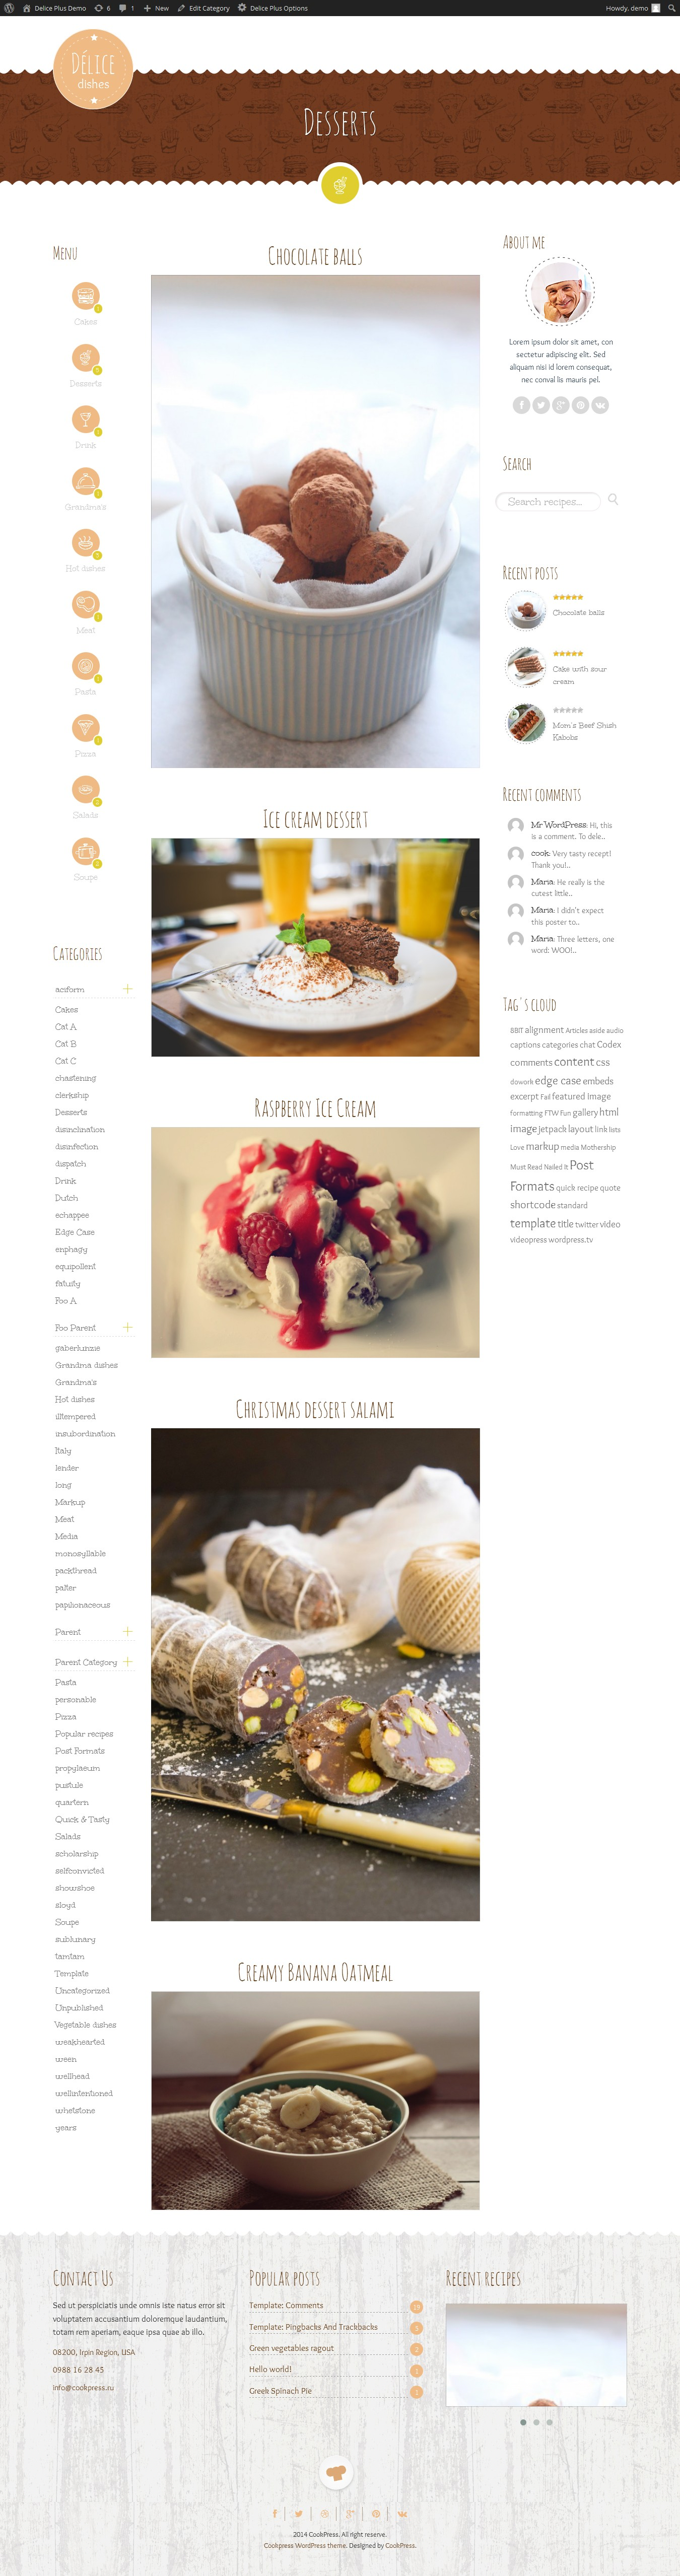 delice plus cooking or crafting wp theme \u2022 by cookpress  american regional cuisine firefox.php #14